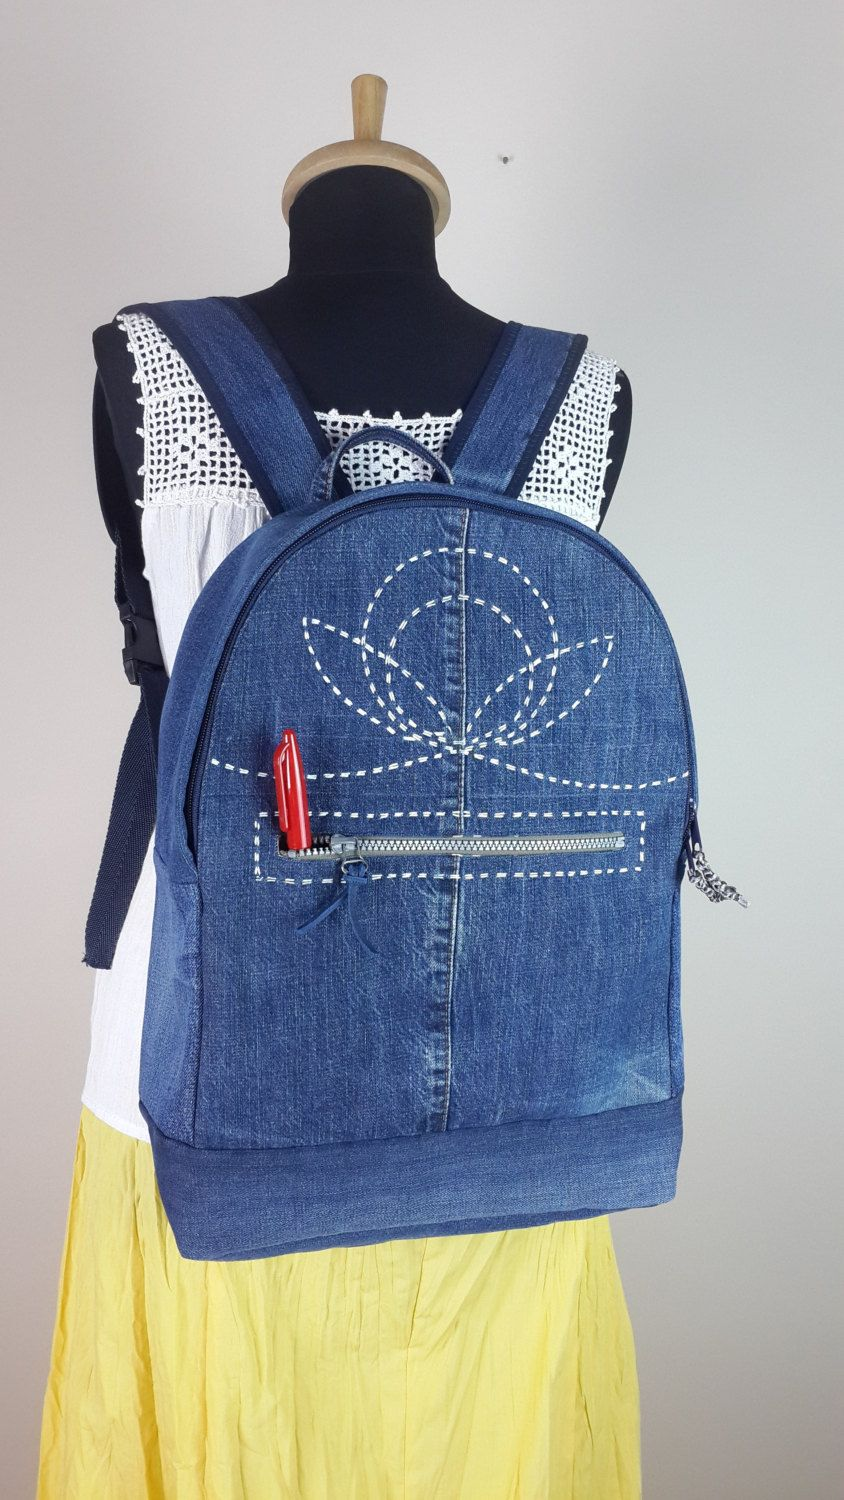 Denim Backpack, Jeans Backpack, Recycled Denim, Reclaimed Denim Bag by duduhandmade on Etsy